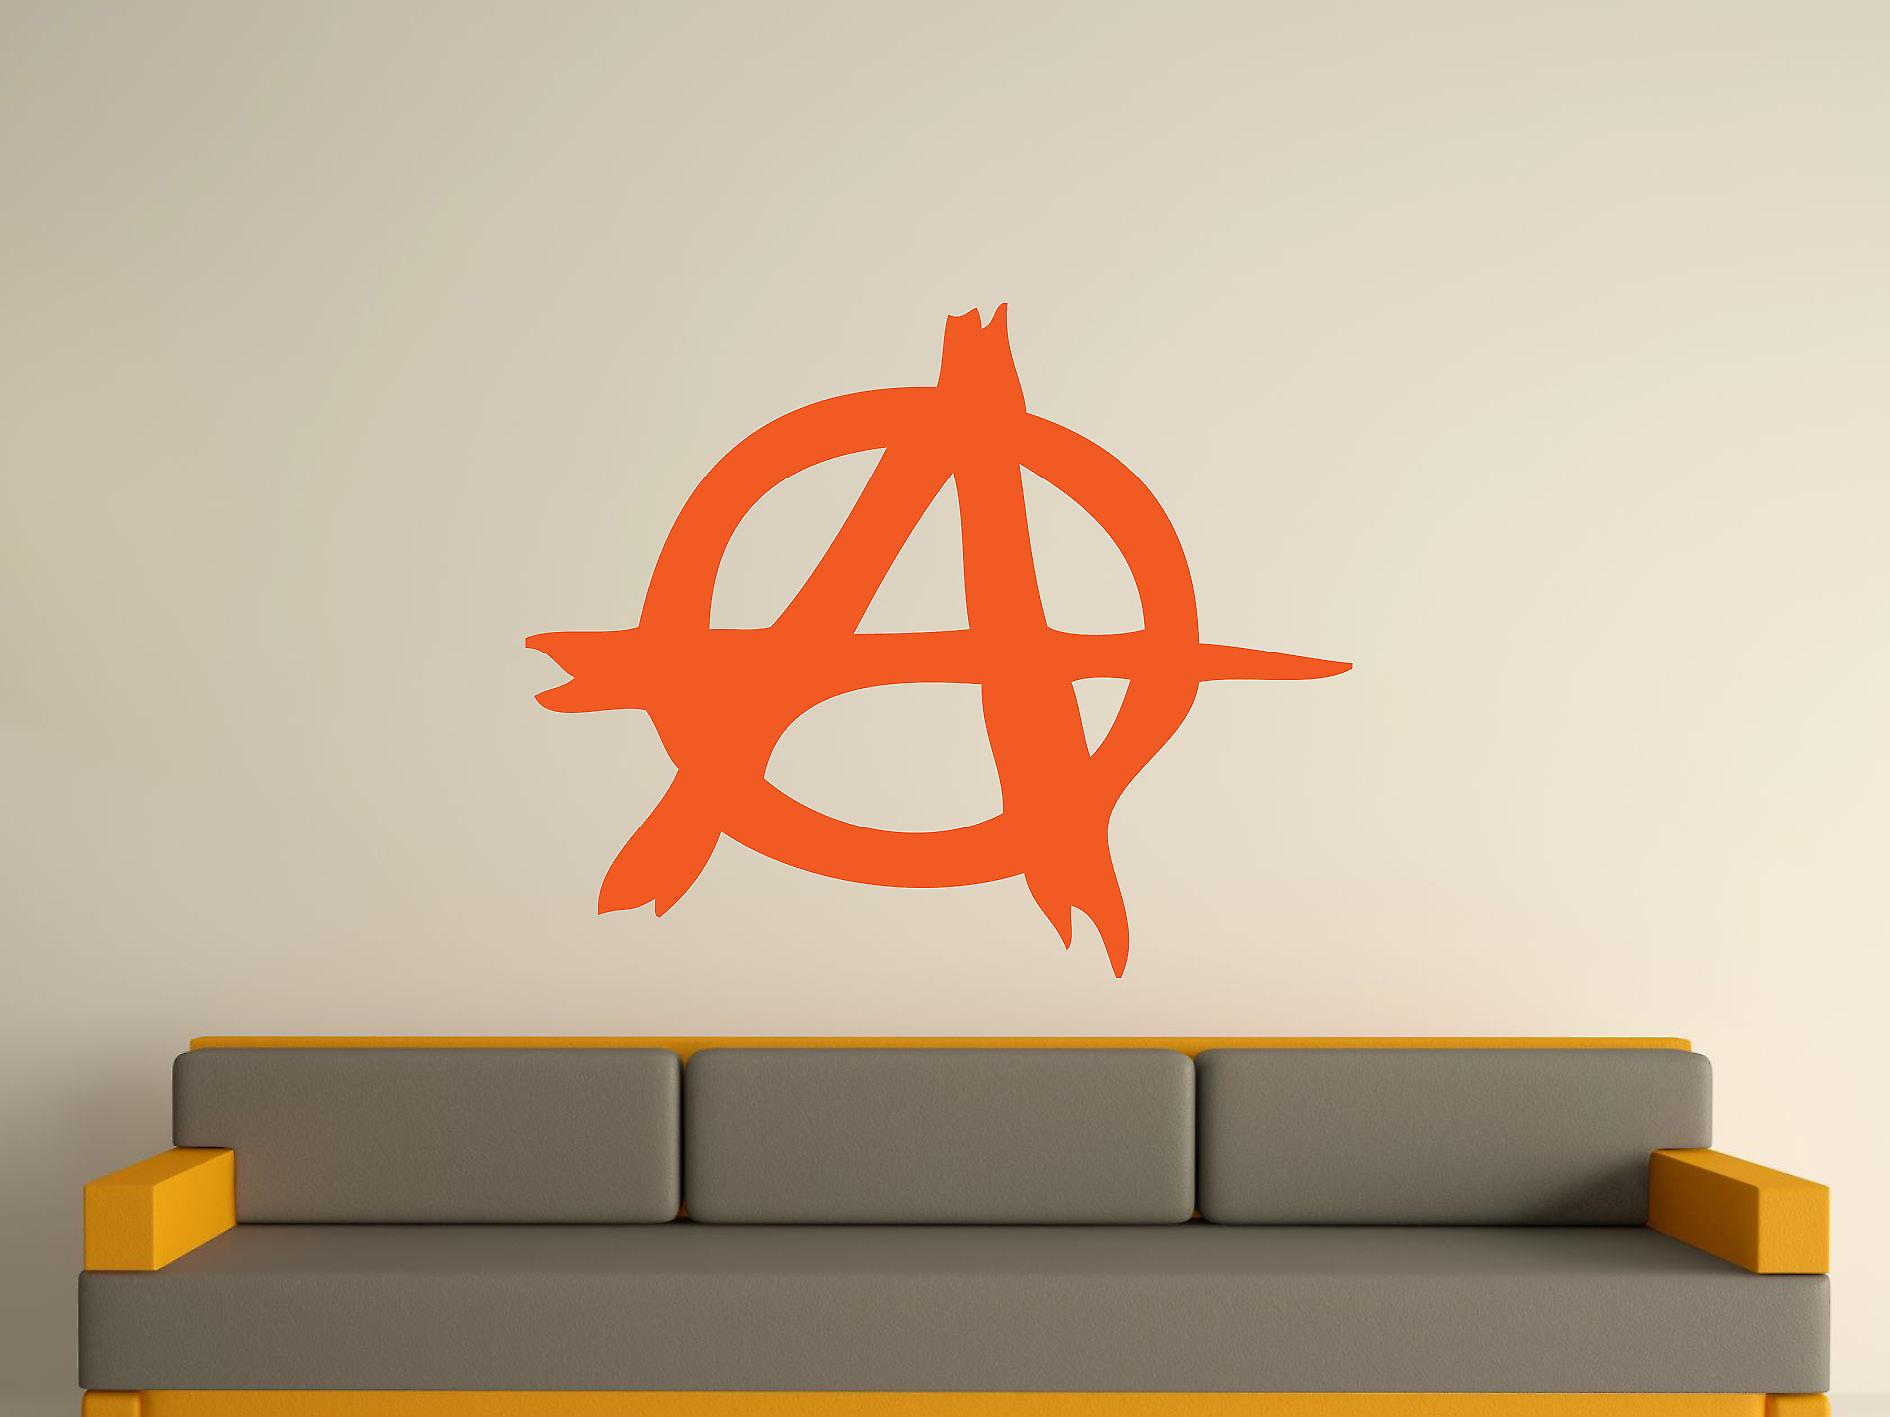 Anarchy Symbol Wall Art Sticker - Orange